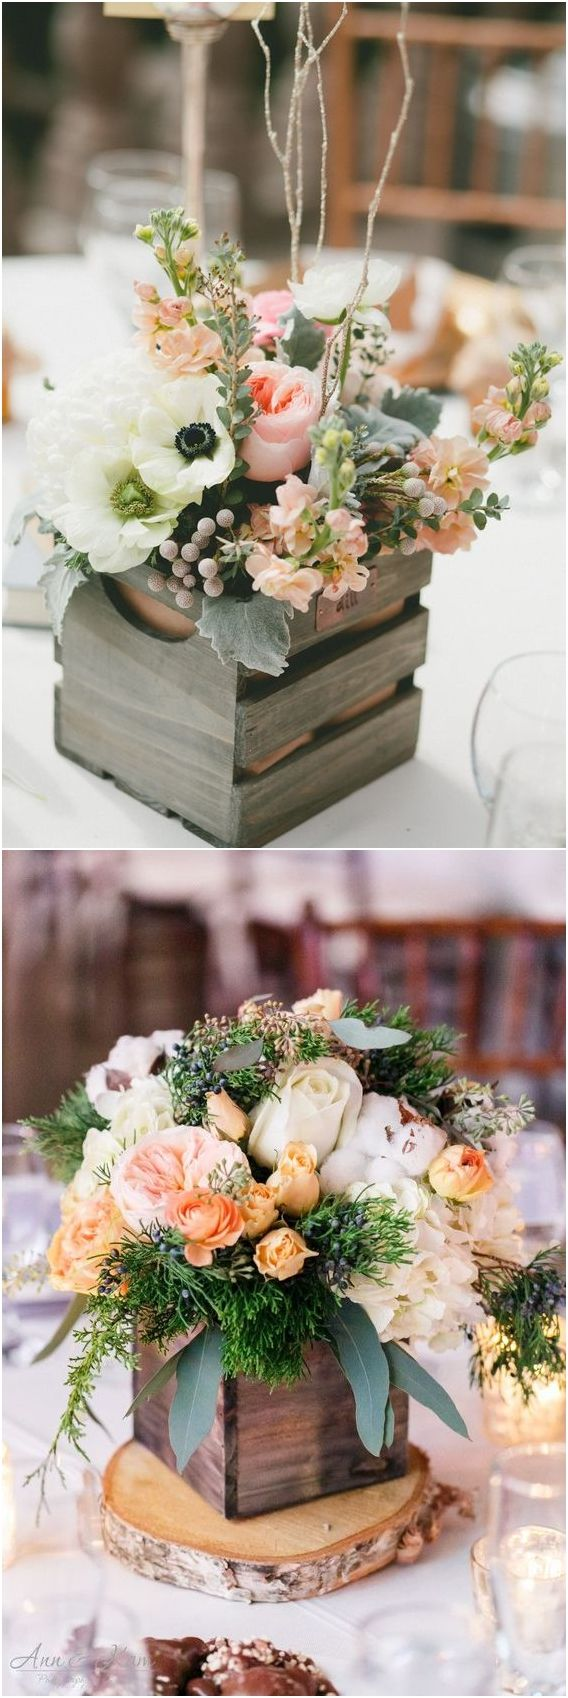 Rustic Woodsy Wedding Trend 2018 Wooden Crates Flowers